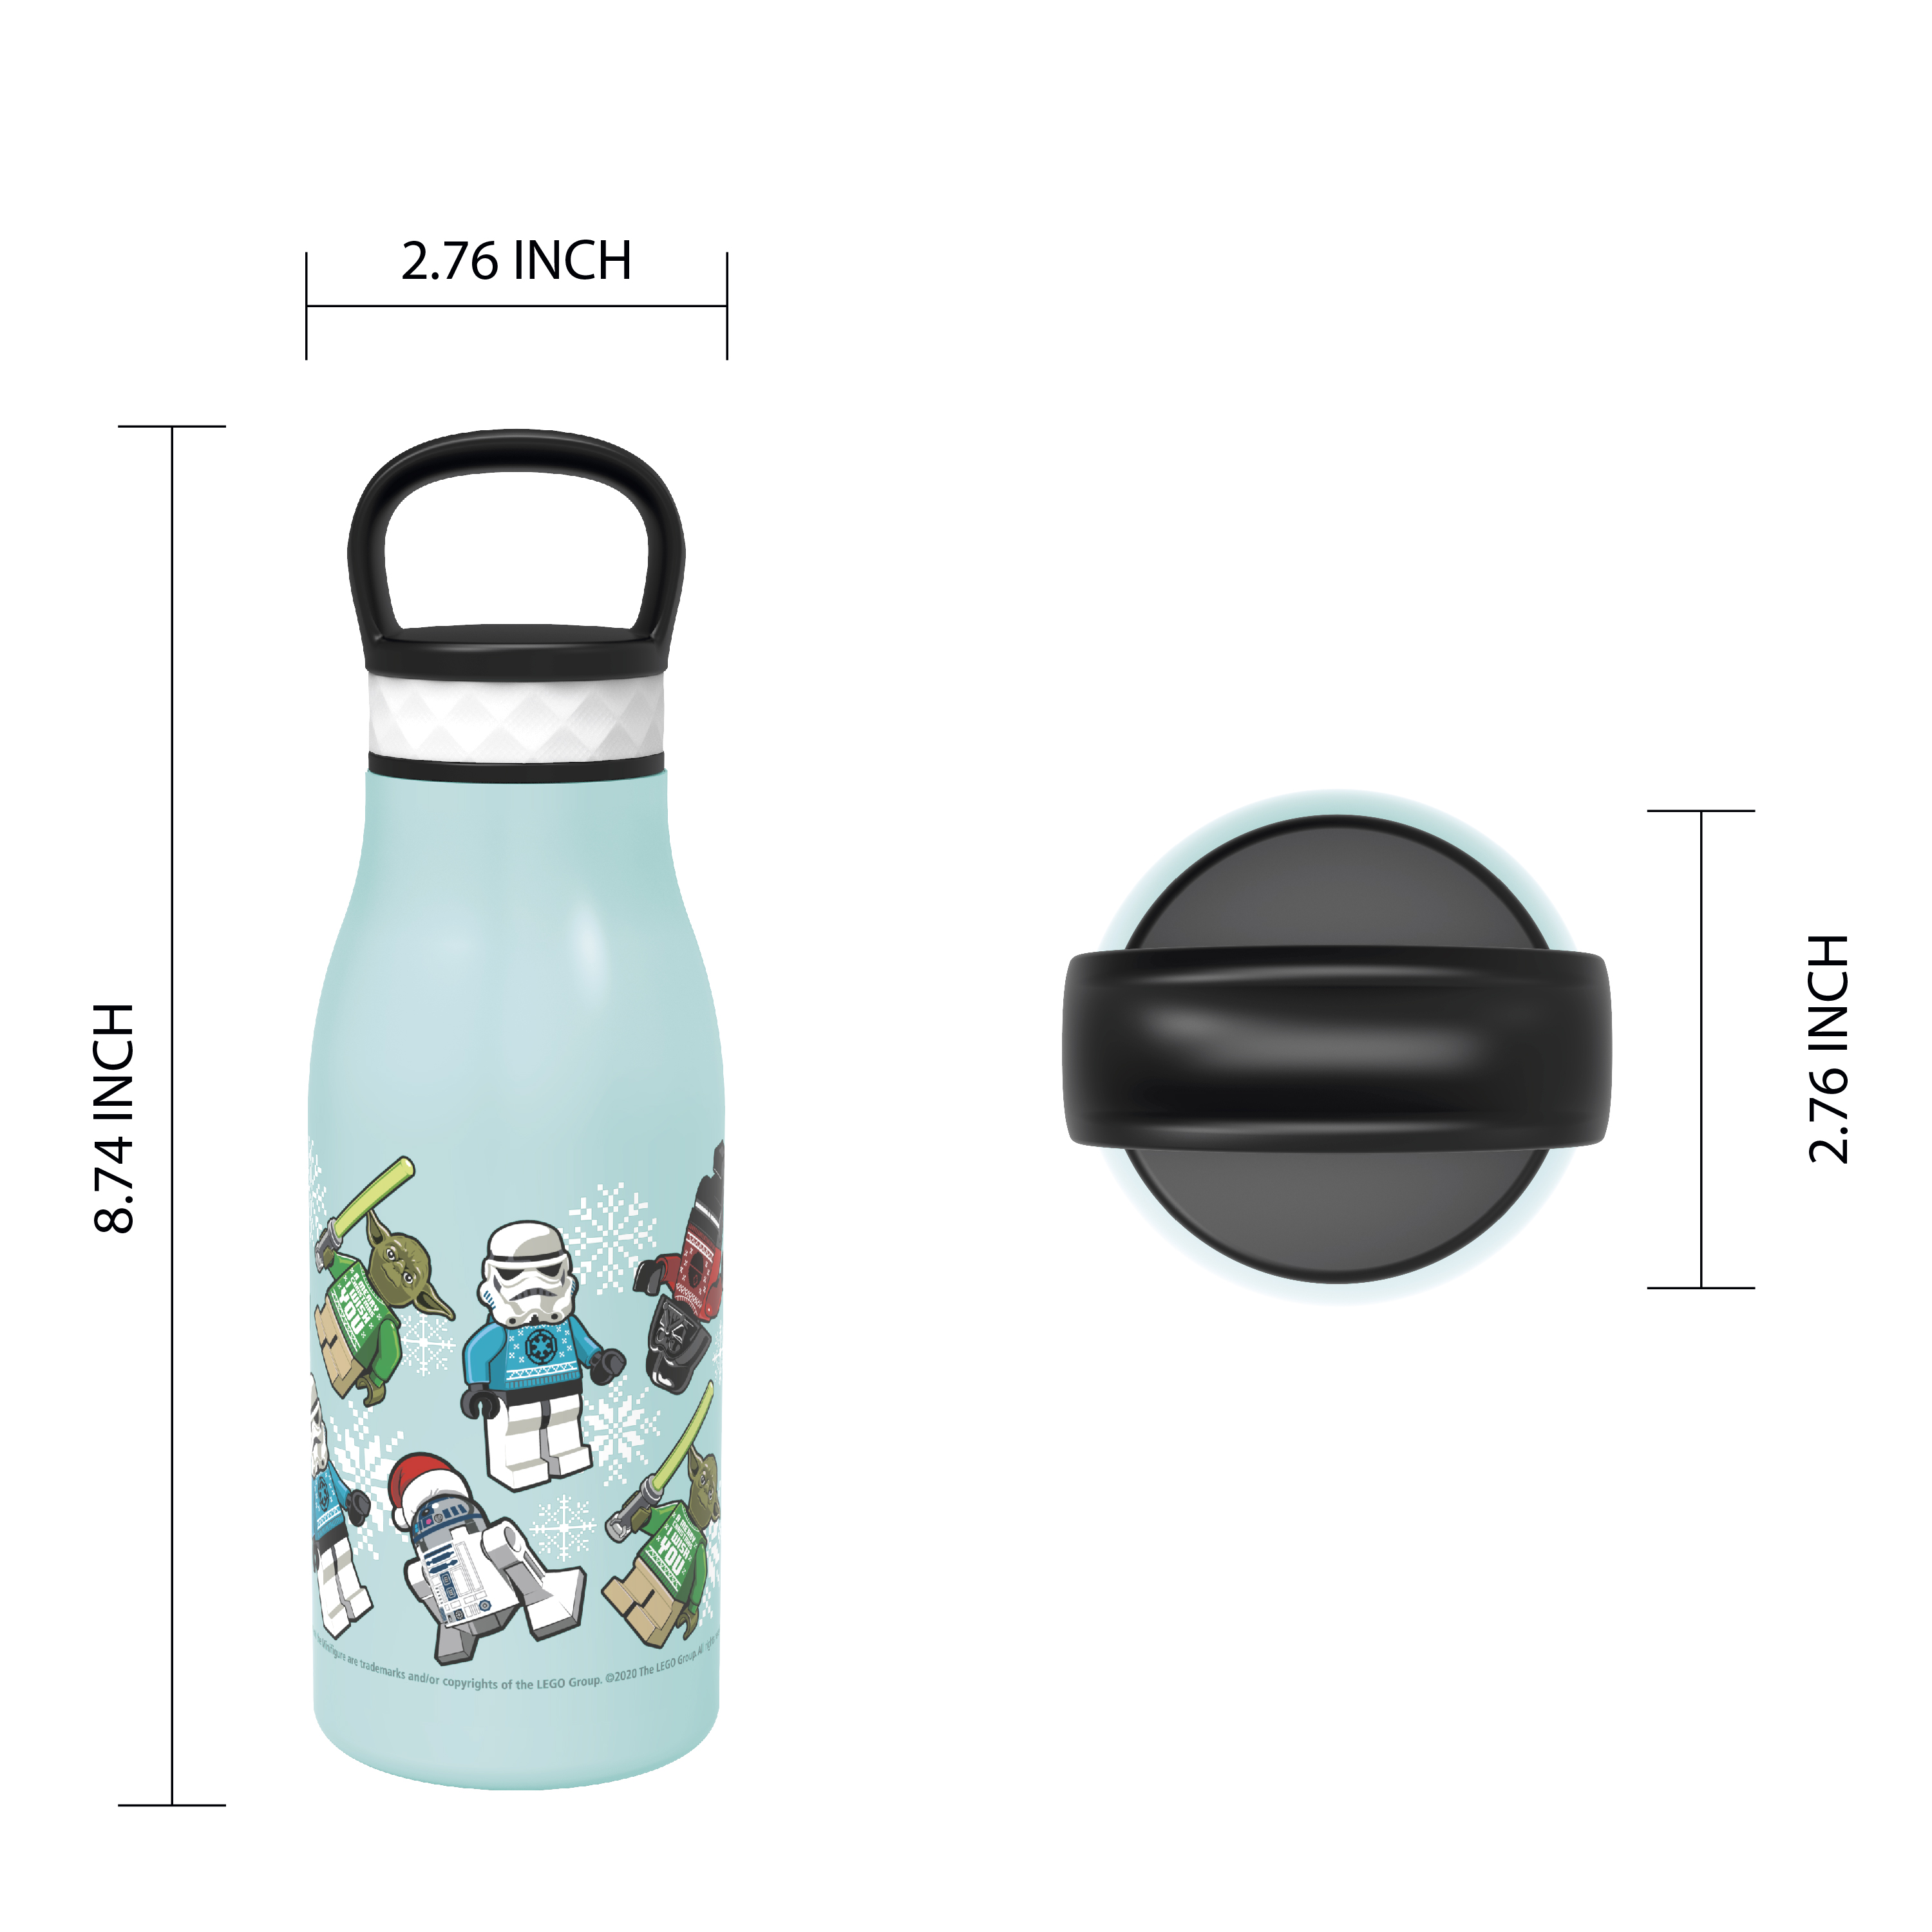 Lego Star Wars 12 ounce Stainless Steel Vacuum Insulated Water Bottle, Darth Vader, Stormtroopers and Yoda slideshow image 7